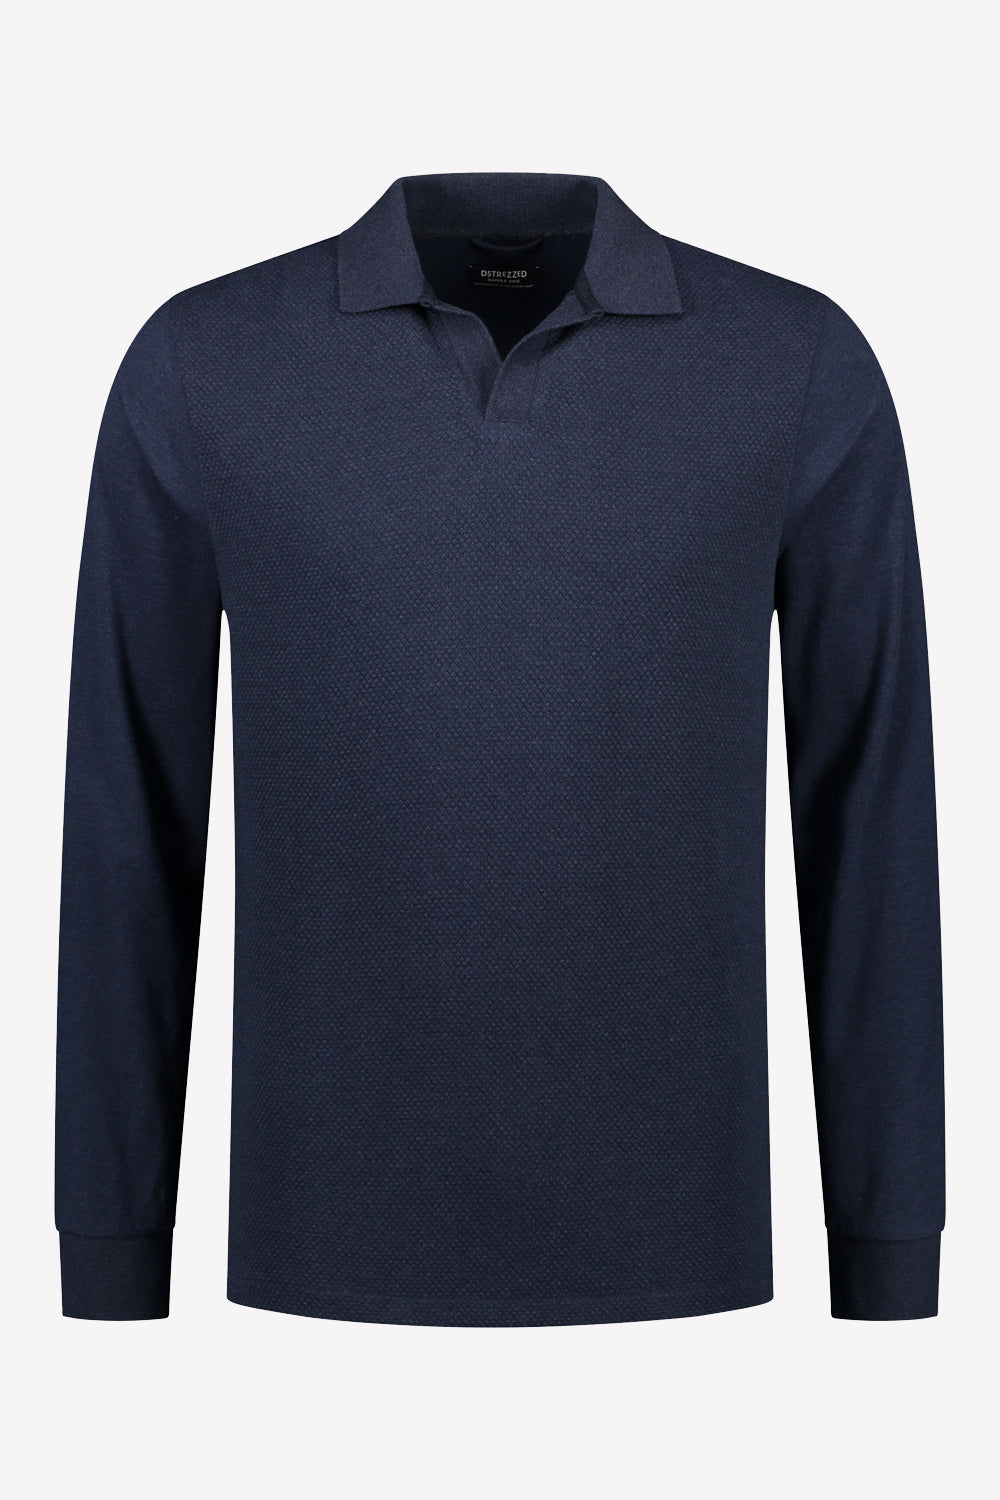 Mens L/S Honeycomb Stretch Polo | Shop Dstrezzed at Wallace and Gibbs